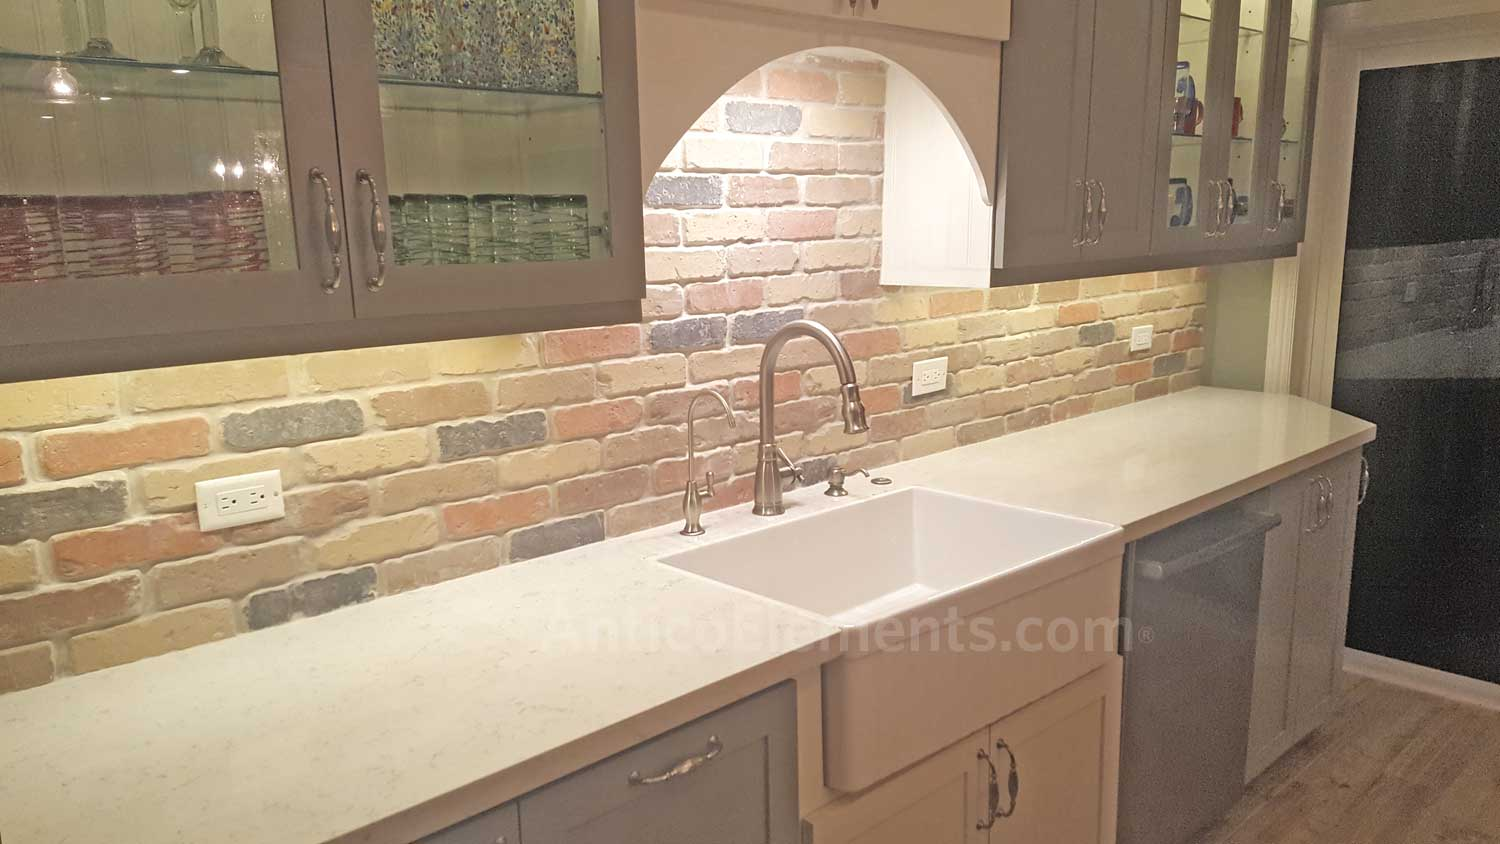 Brick Paneling In Kitchen Backsplash-2